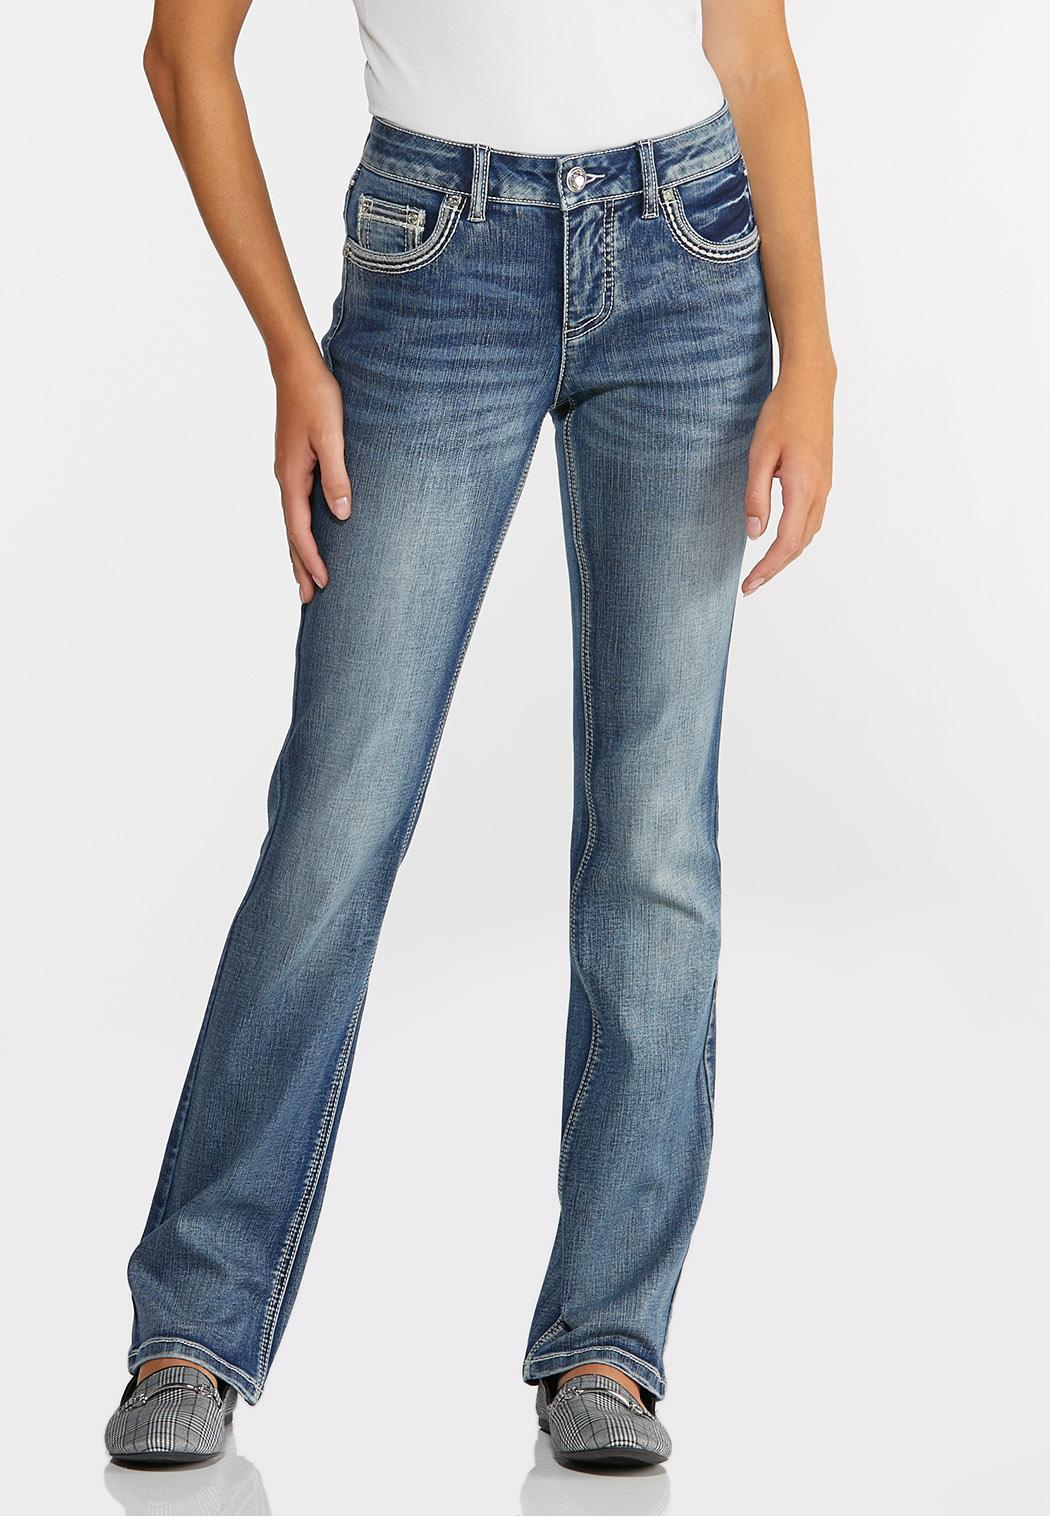 Embellished Cross Pocket Jeans (Item #44351019)